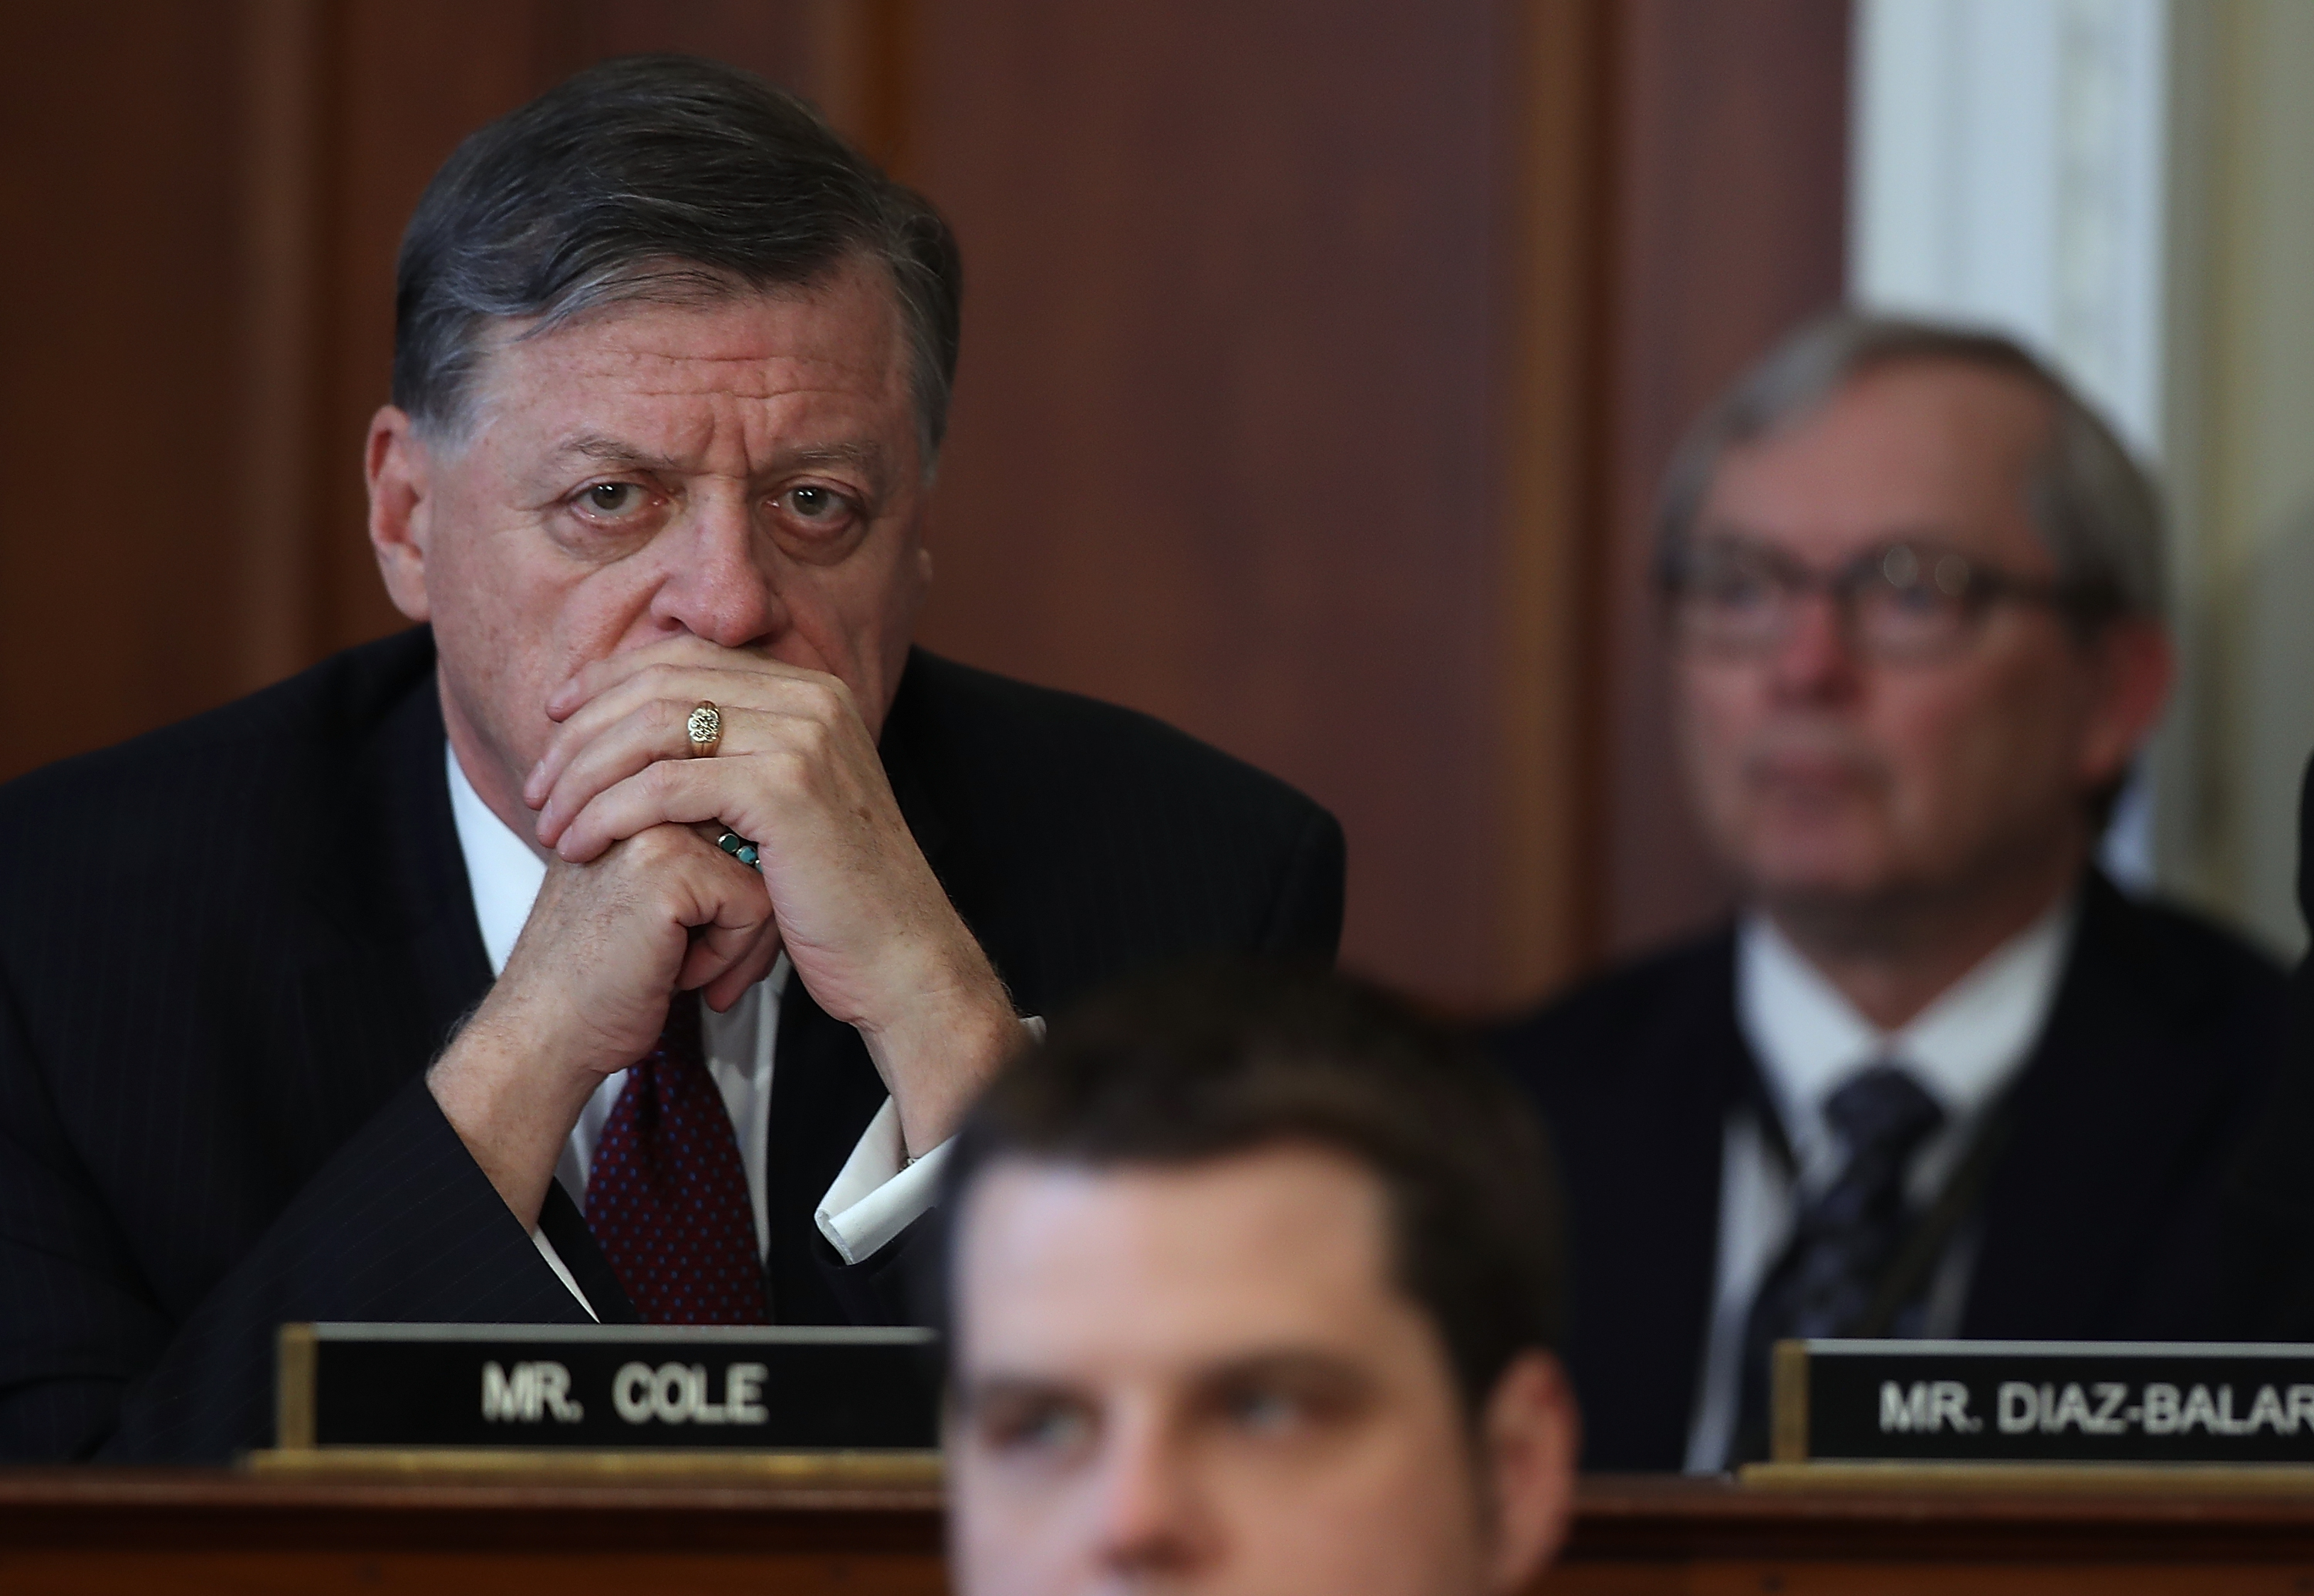 U.S. Rep. Tom Cole (left), R-Okla., looks on during a hearing on Capitol Hill on March 16, 2017 in Washington, D.C. Cole is one of two lawmakers requesting a probe of the Pentagon's giant cloud computing solicitation. (Justin Sullivan/Getty Images)